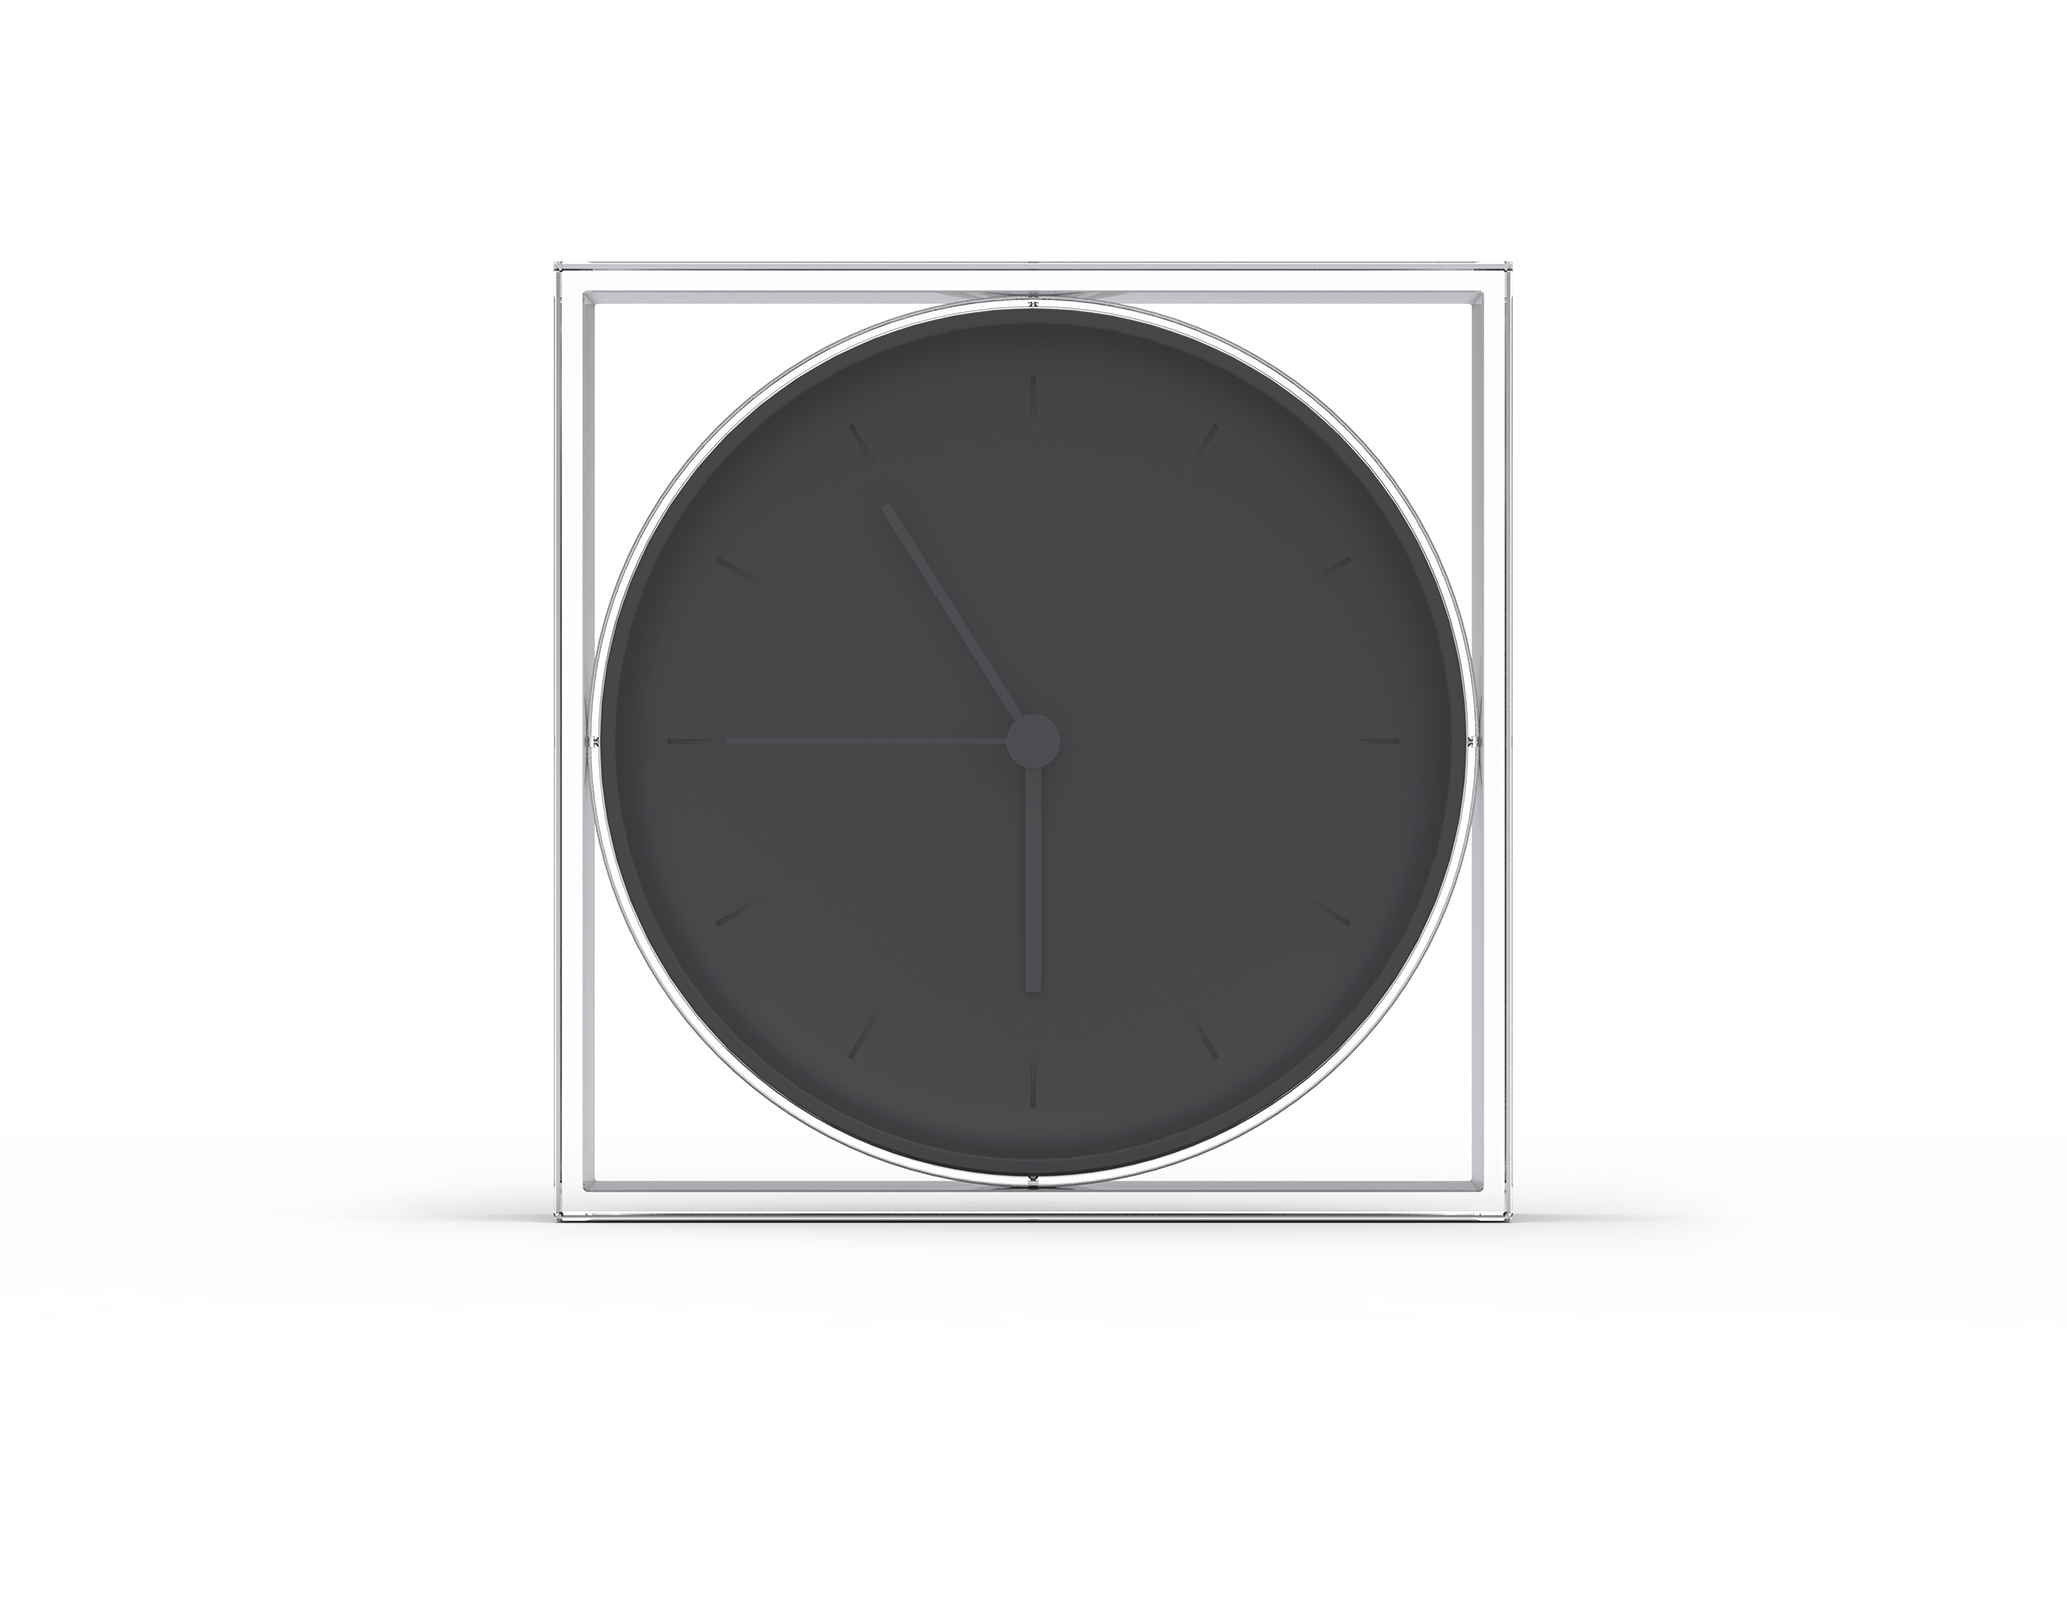 2015-12-10 LEXON VOID TIME packaging renders.2472b